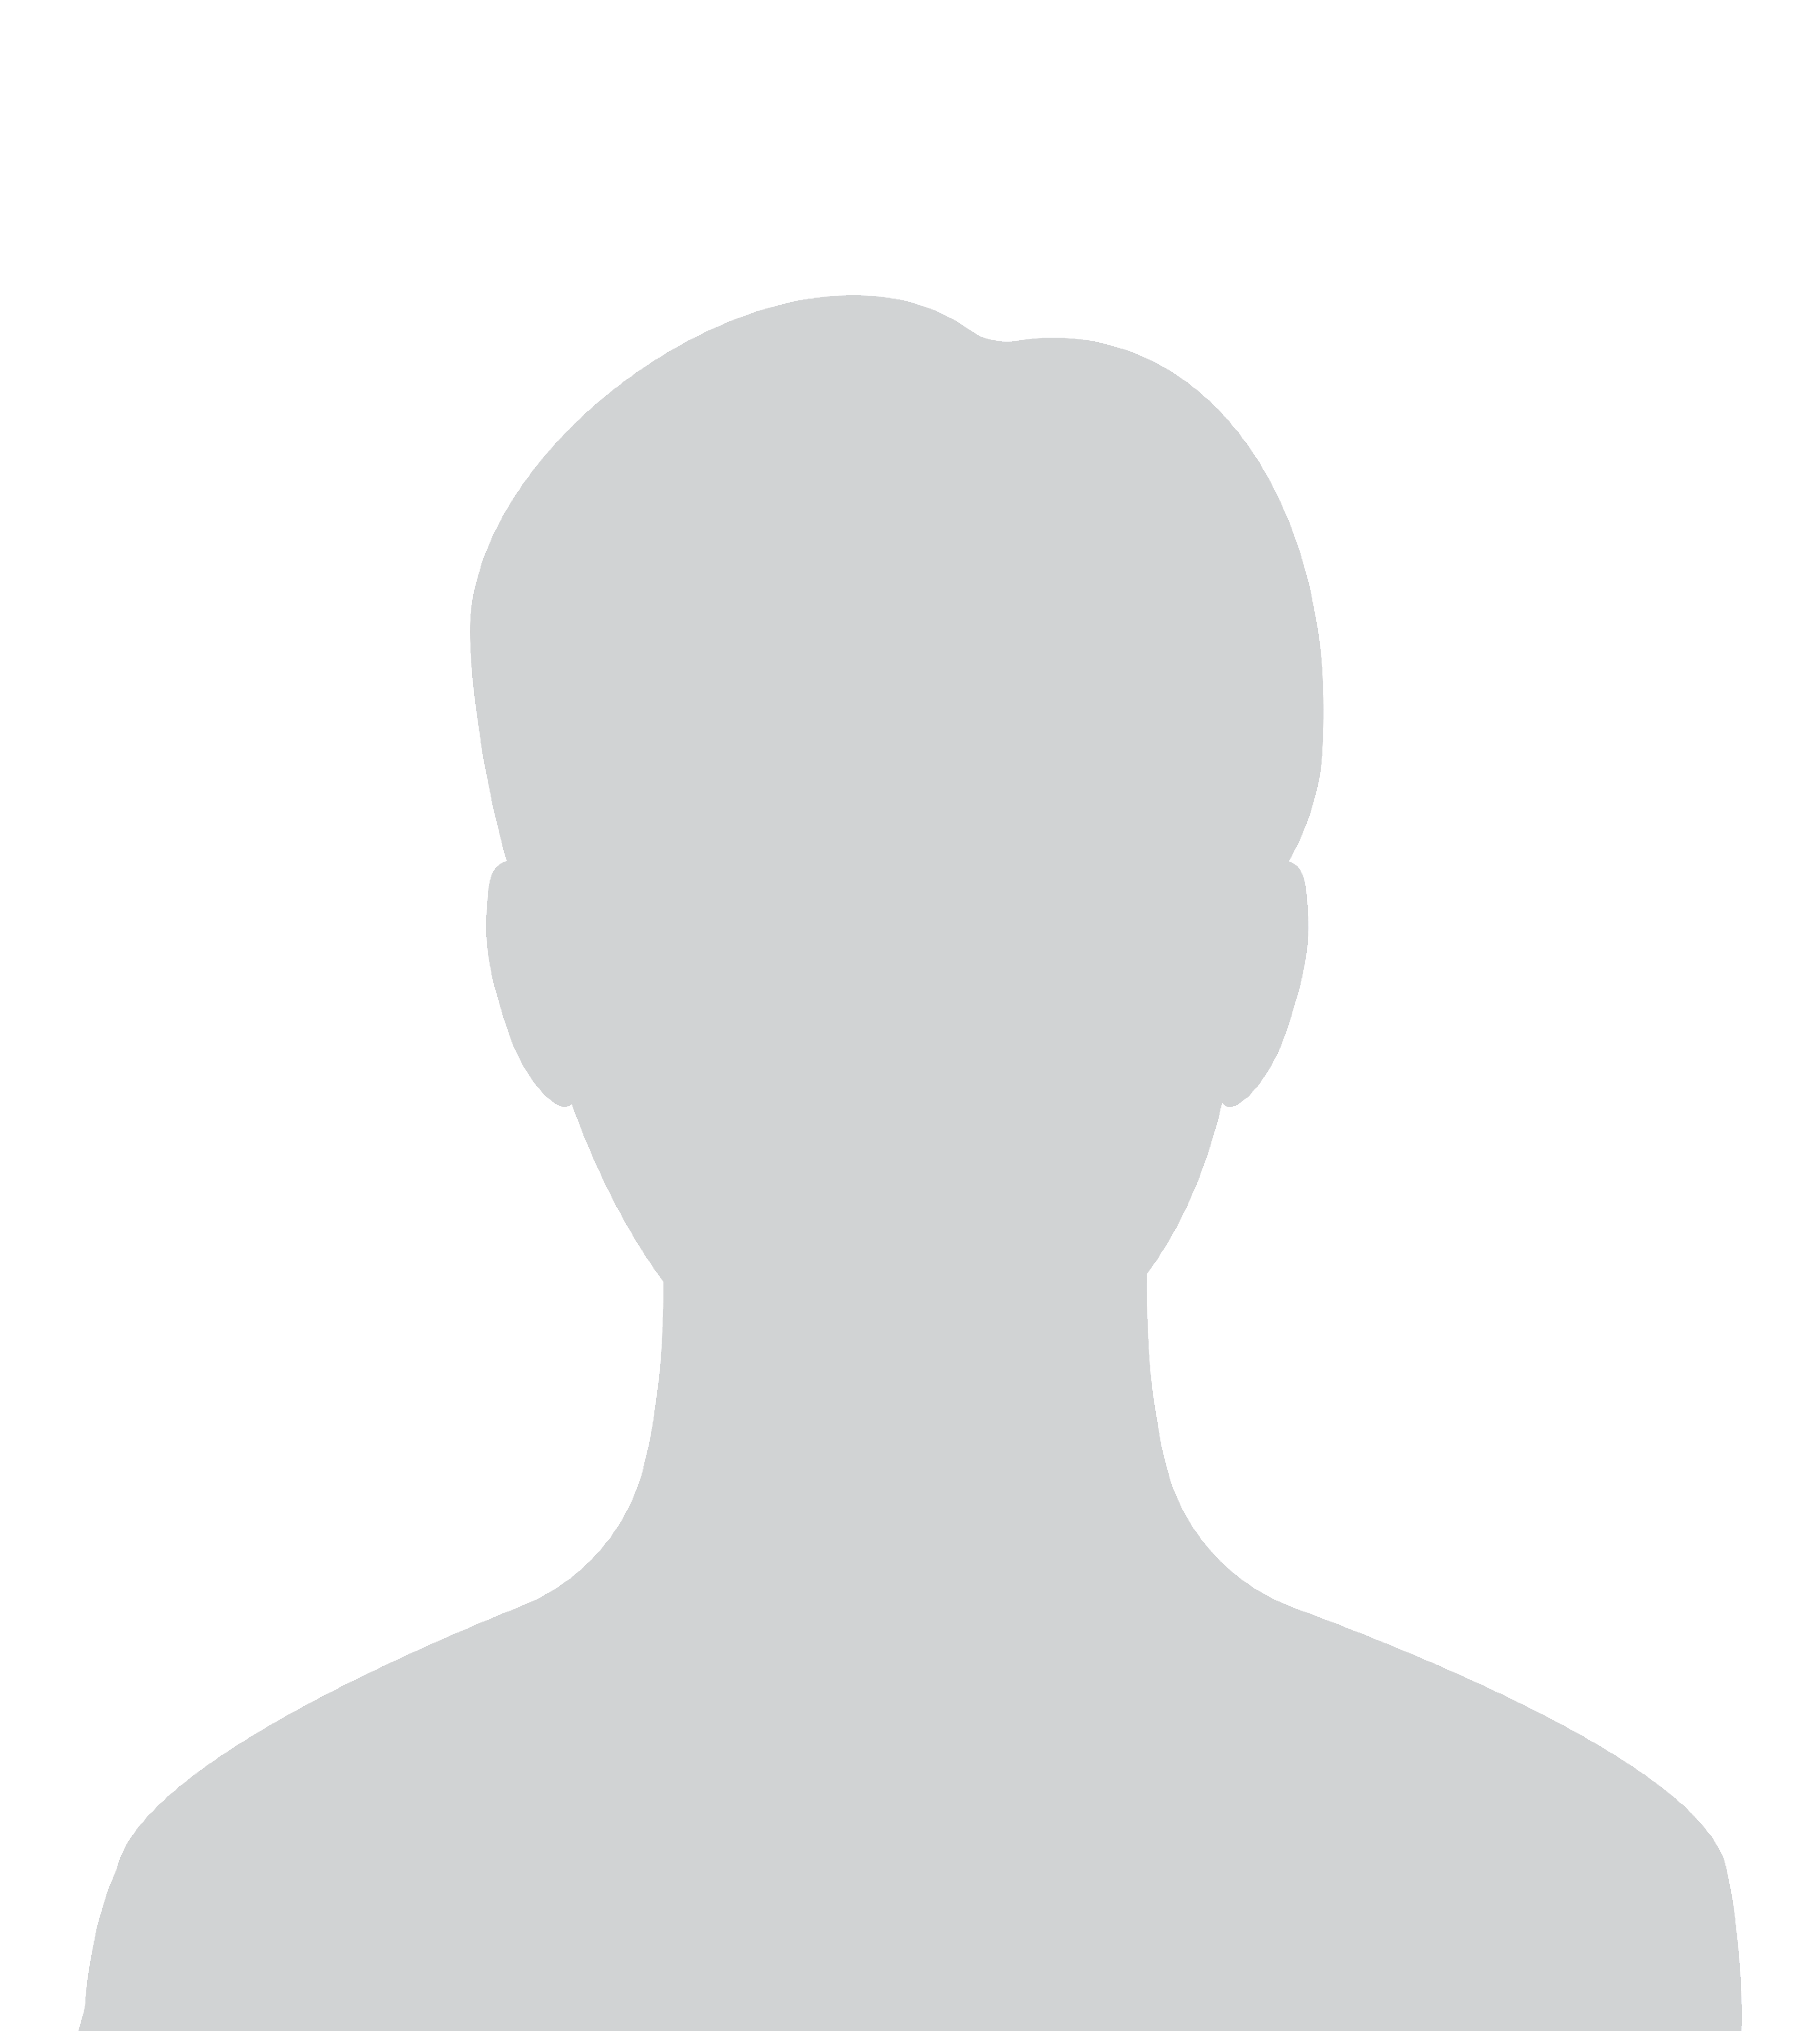 gray placeholder silhouette on white background of person without headshot